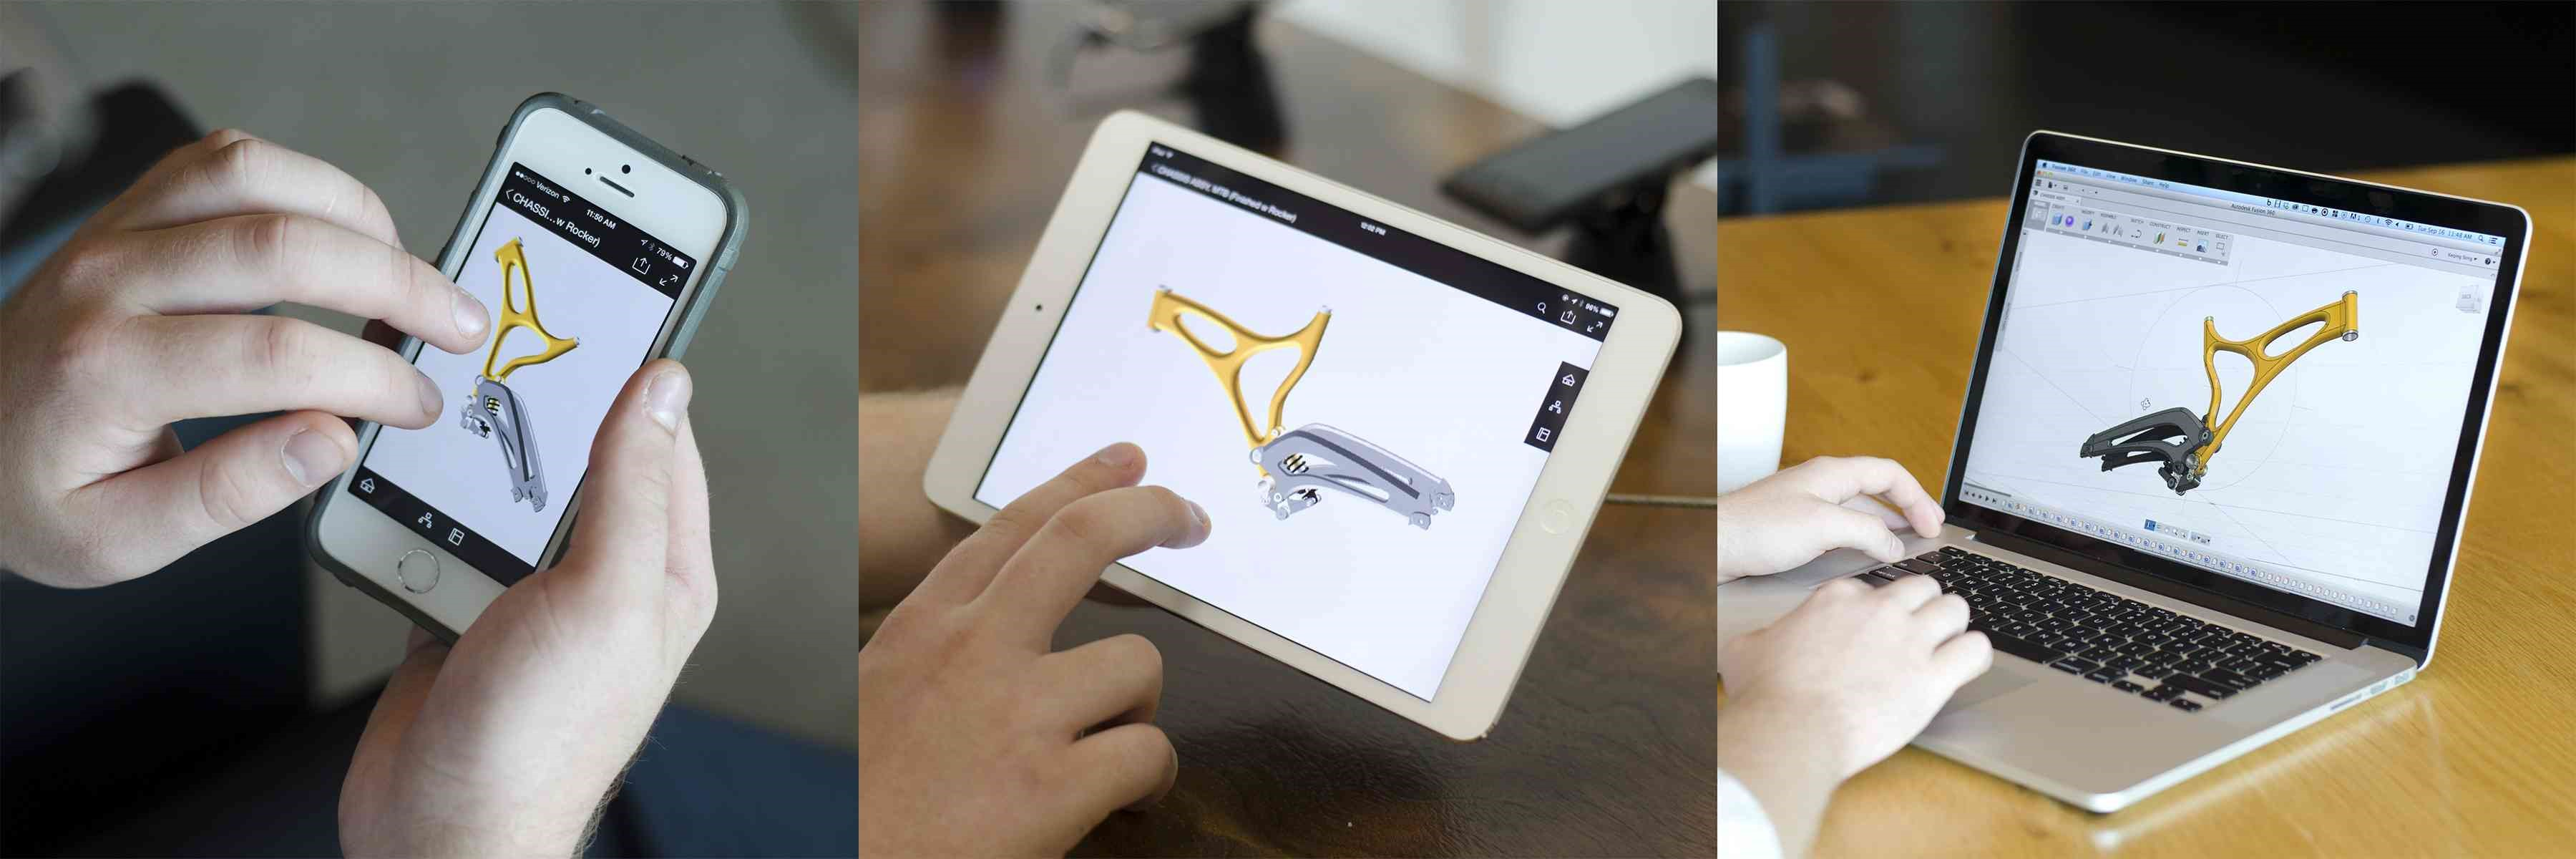 Figure 2: Fusion 360 can be accessed from multiple devices